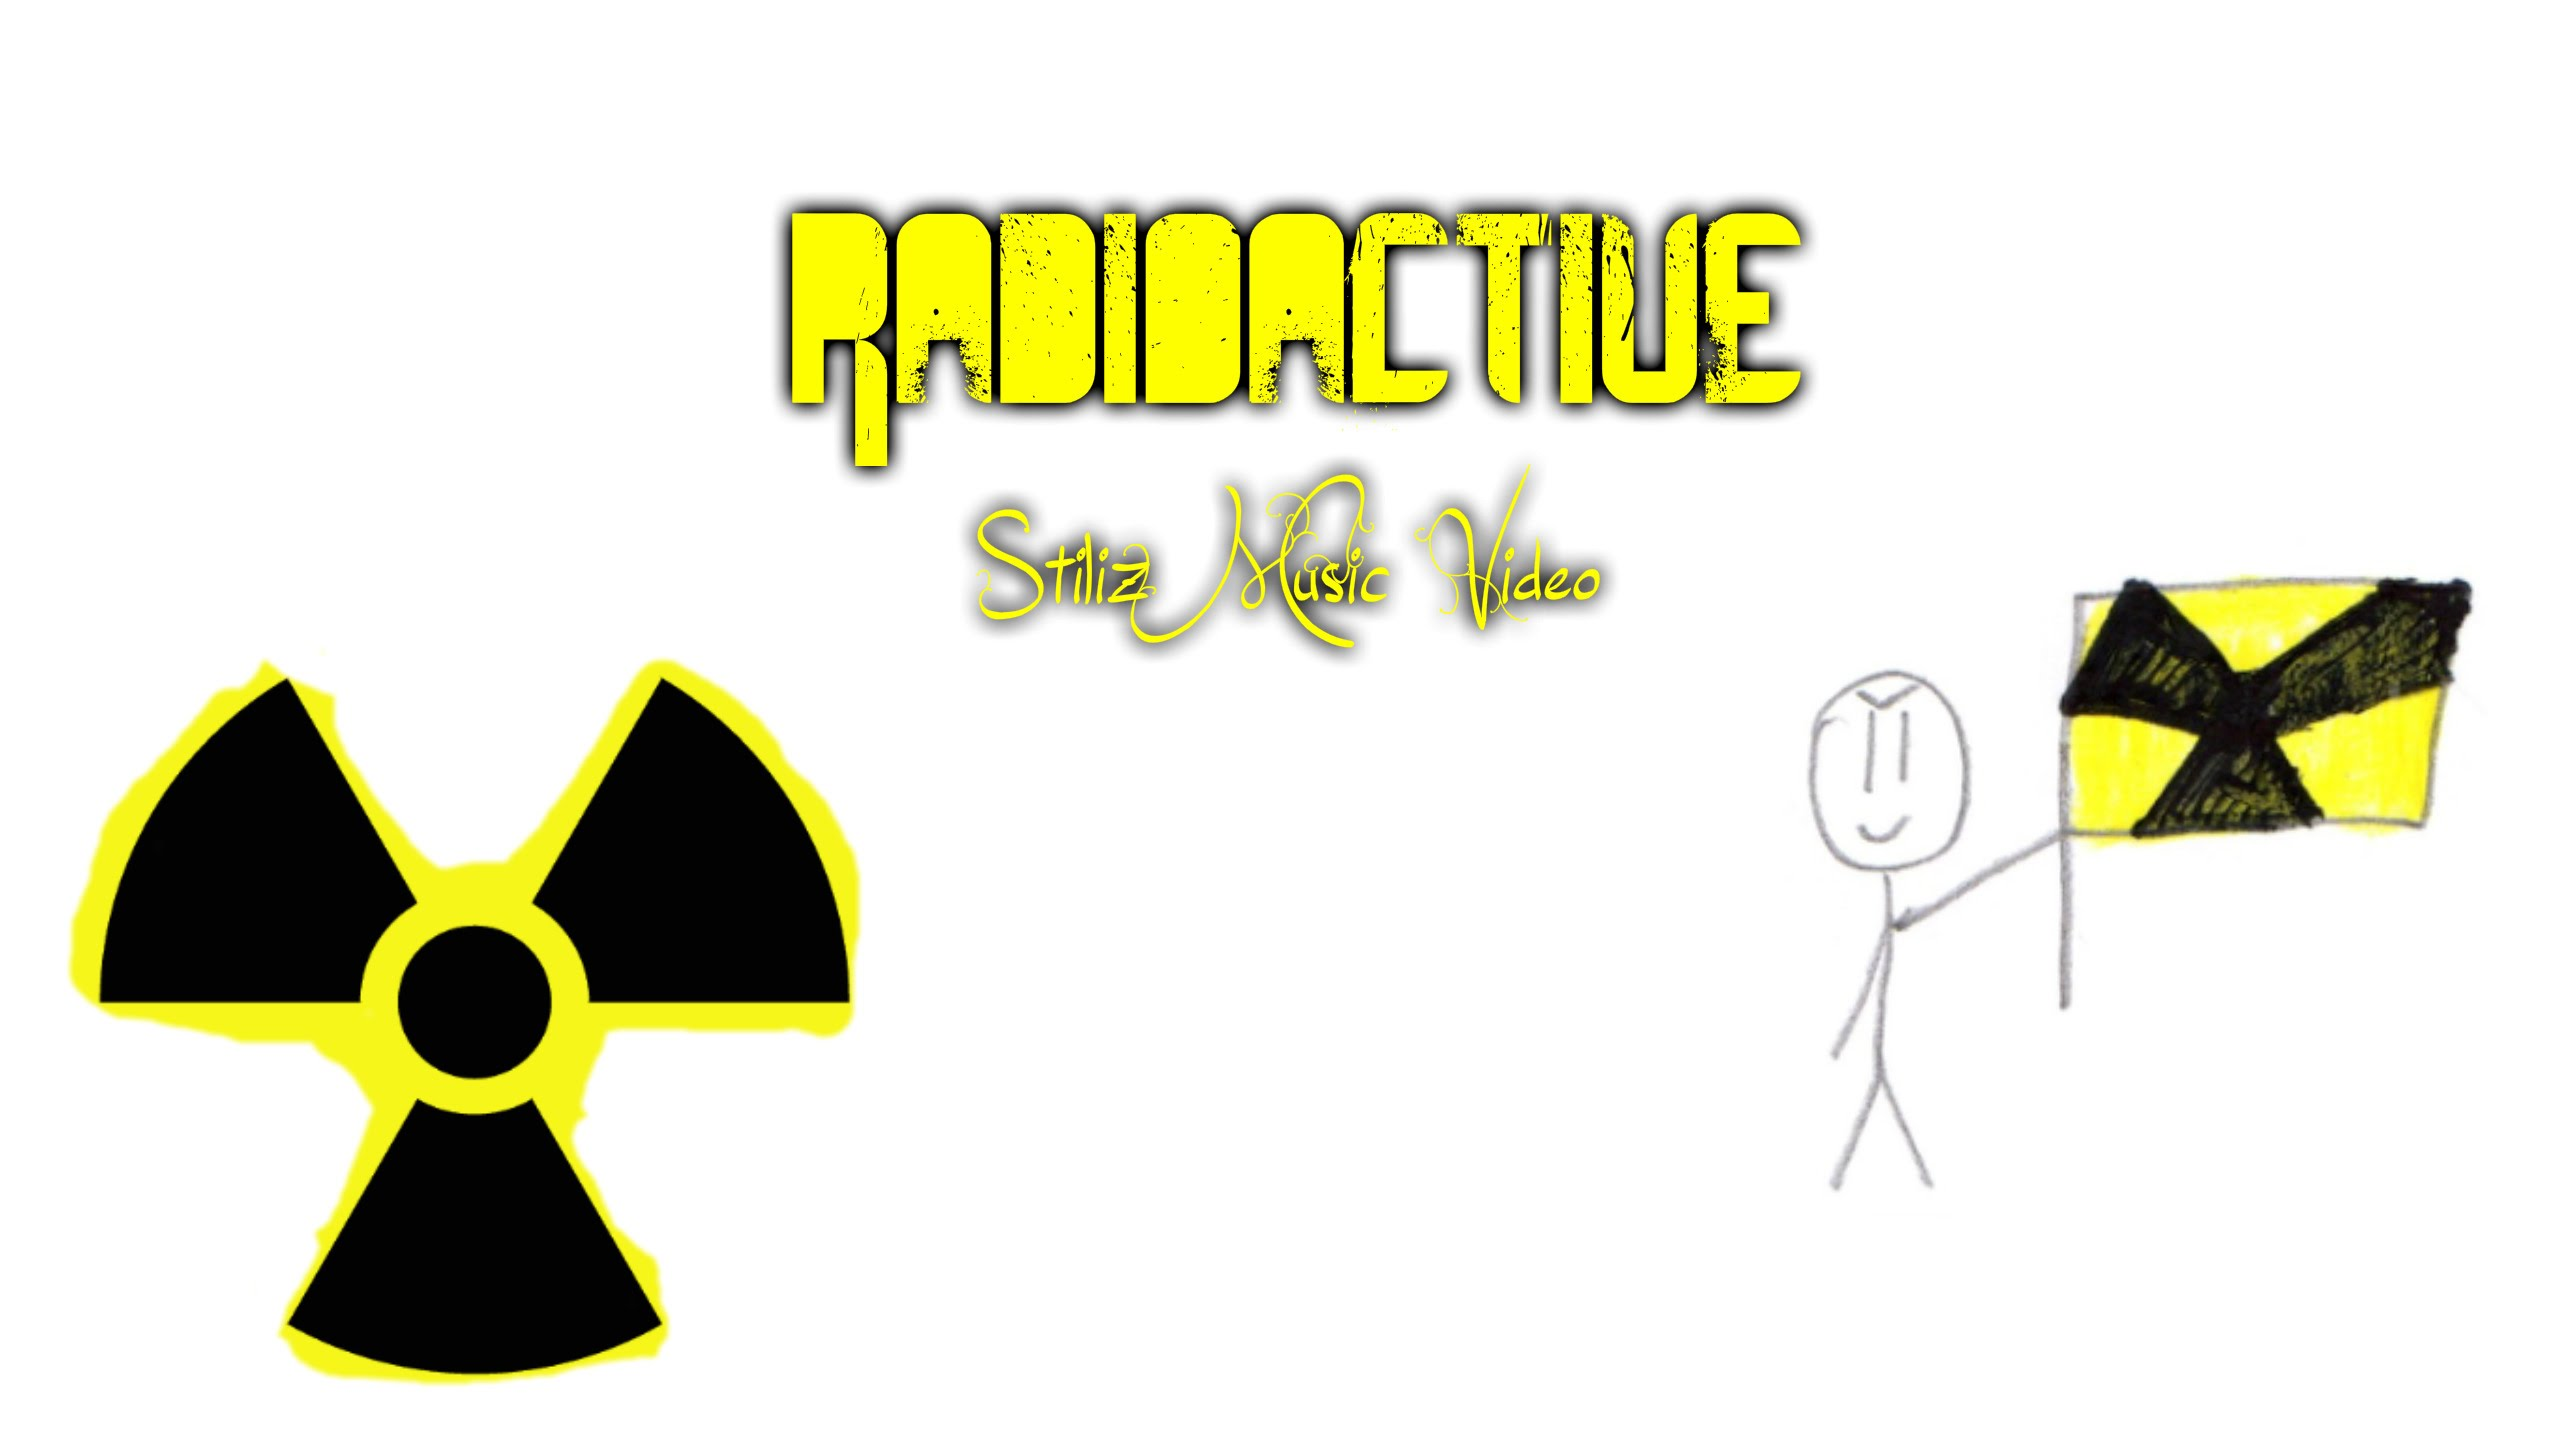 Radioactive clipart cool music Video) Radioactive music video) Radioactive